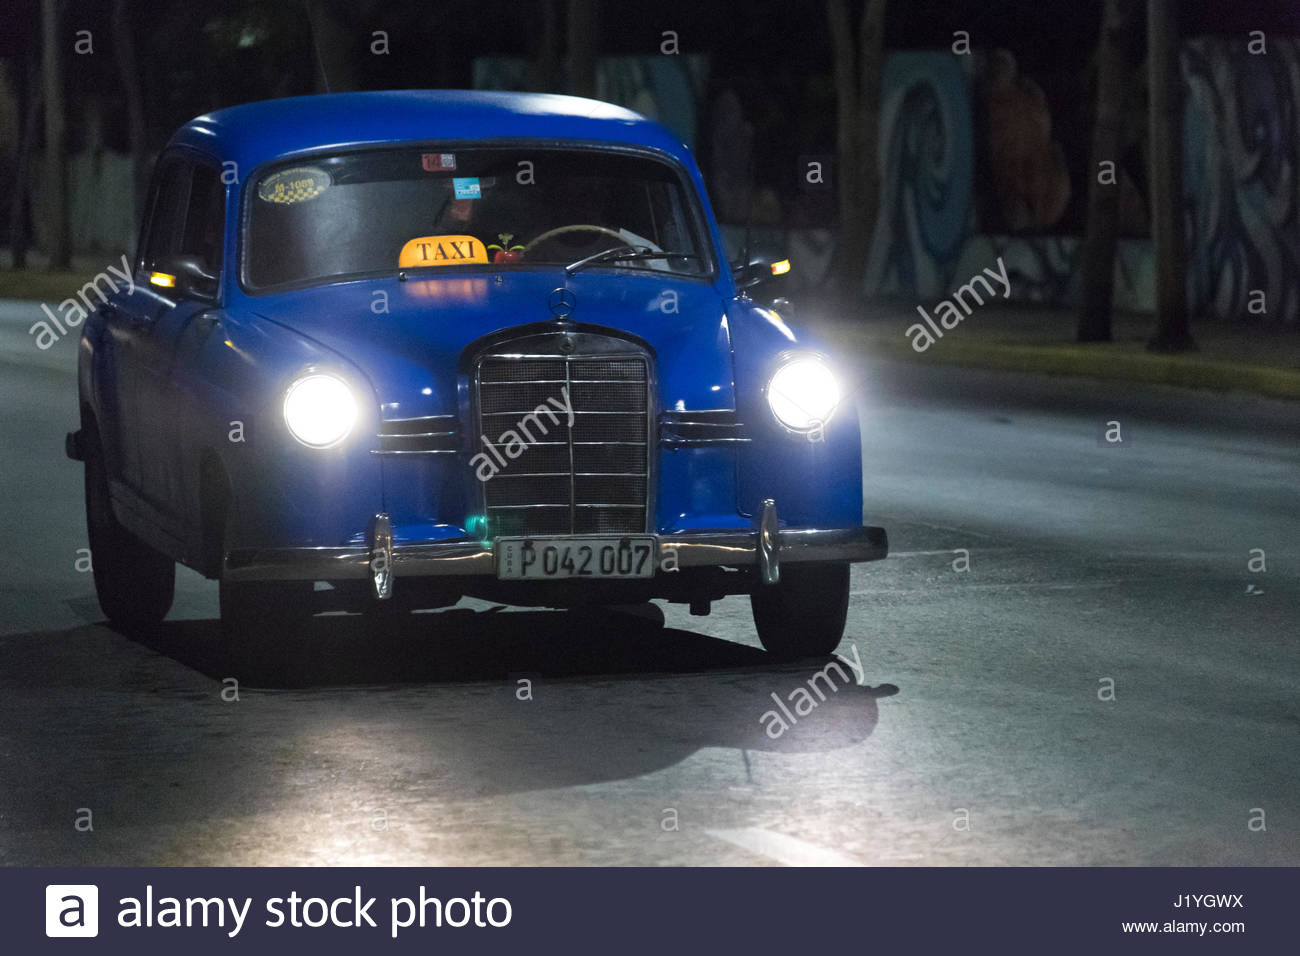 Mercedes Benz, Old obsolete American cars in action during nighttime ...